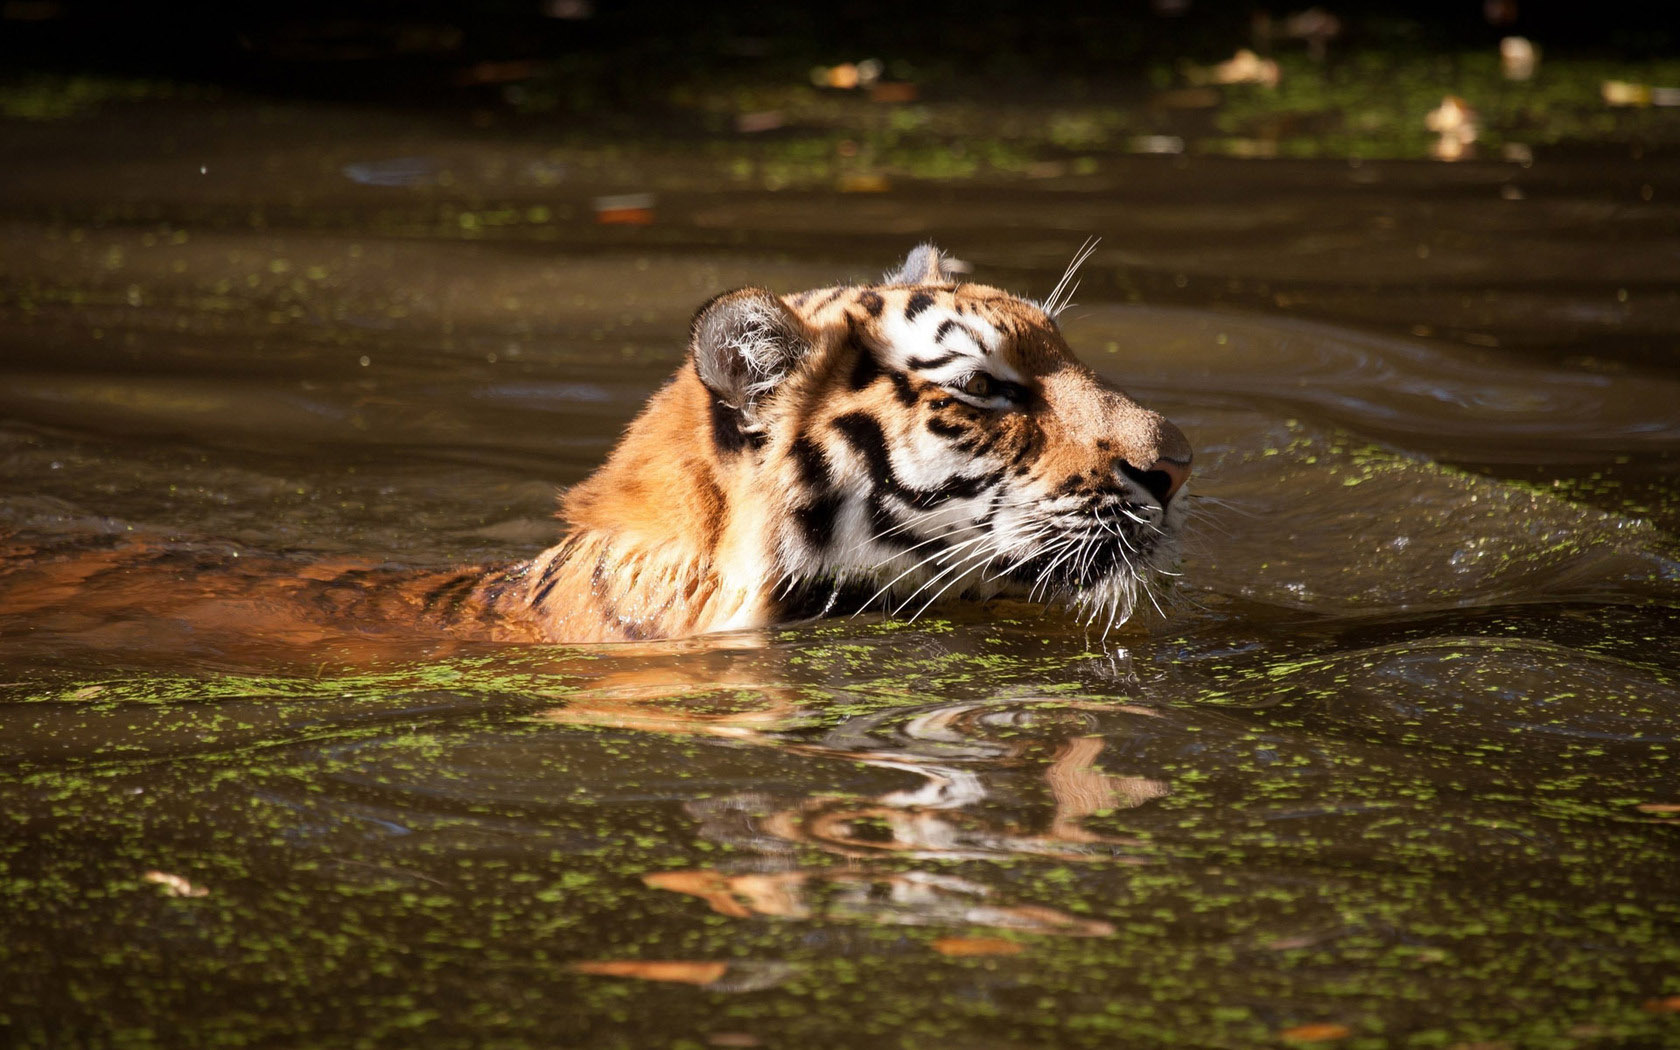 Cute Cartoon Food Wallpapers Tiger Swimming In Dirty Water Wild Animals